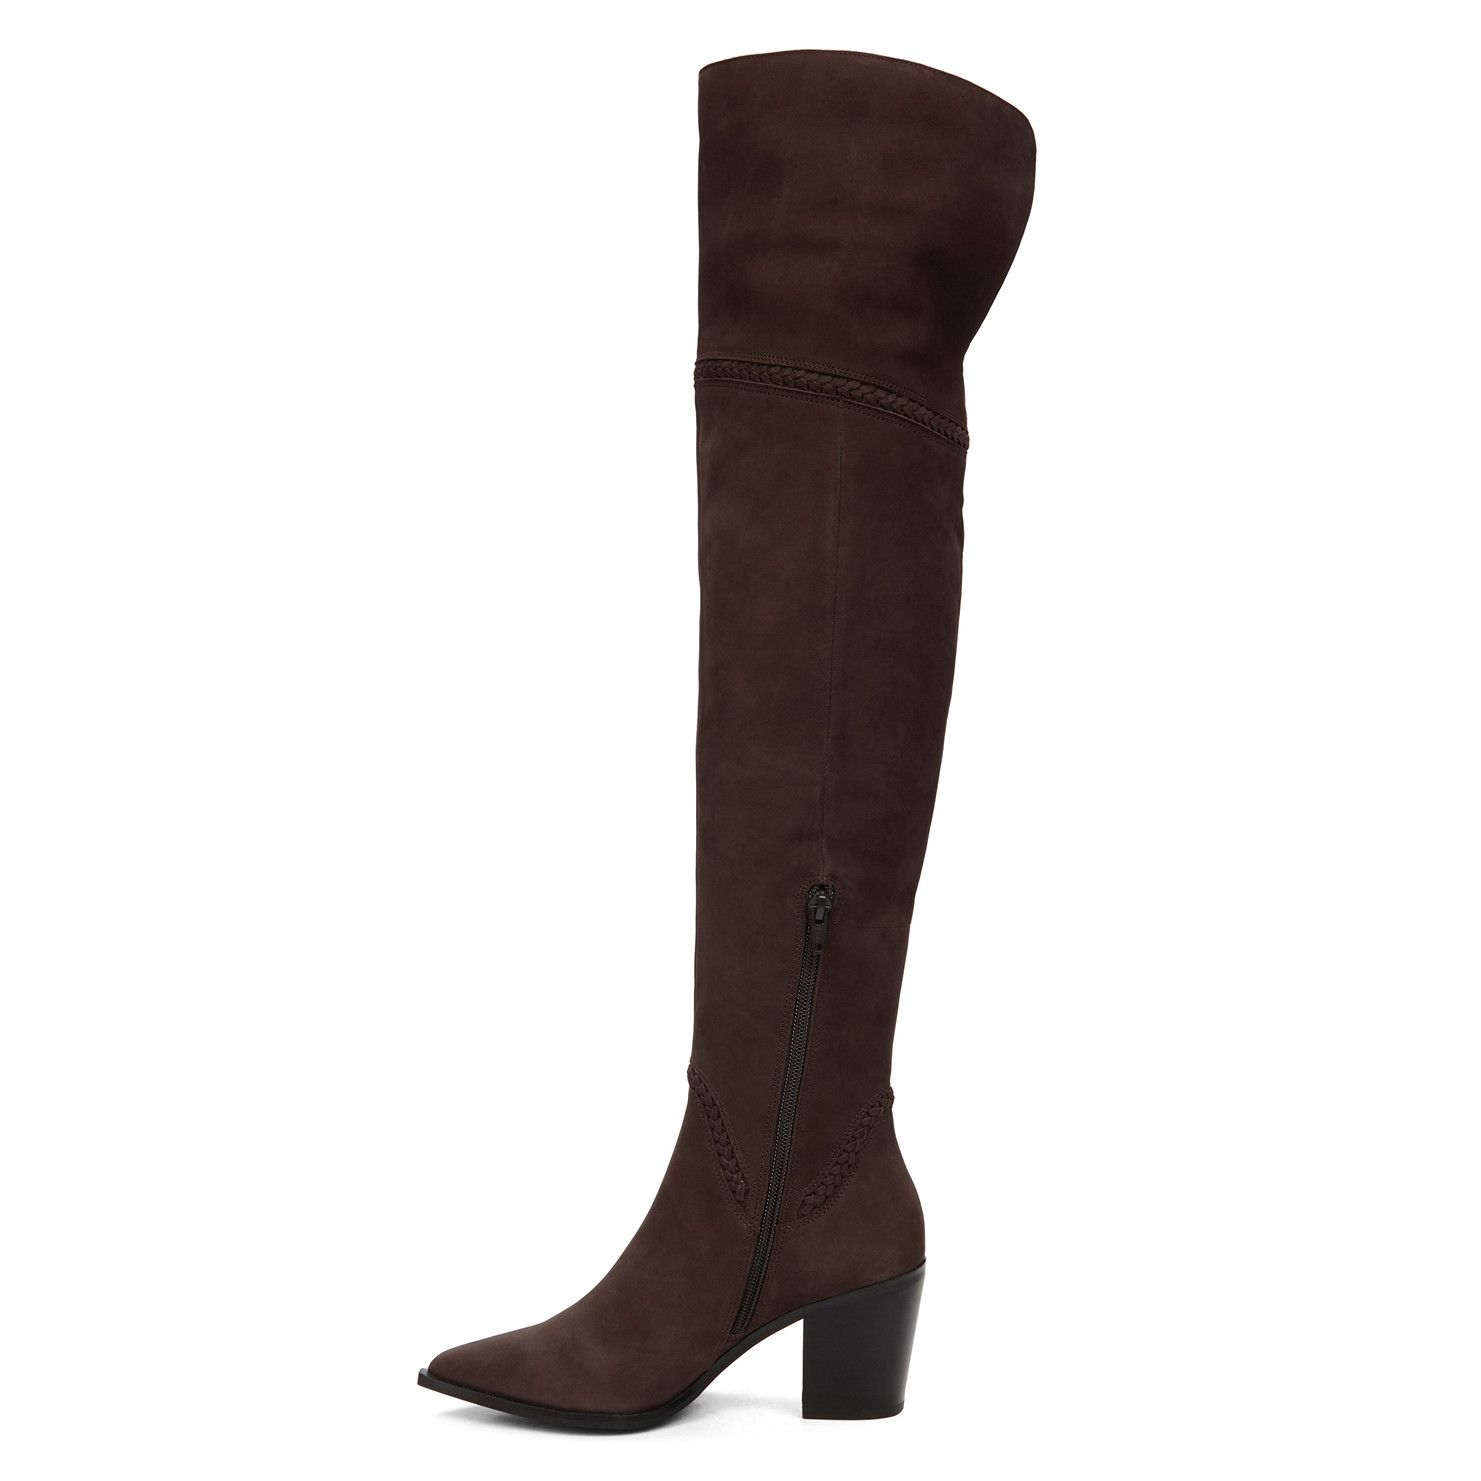 352f3a668b0 Olena over the knee boot from Aldo